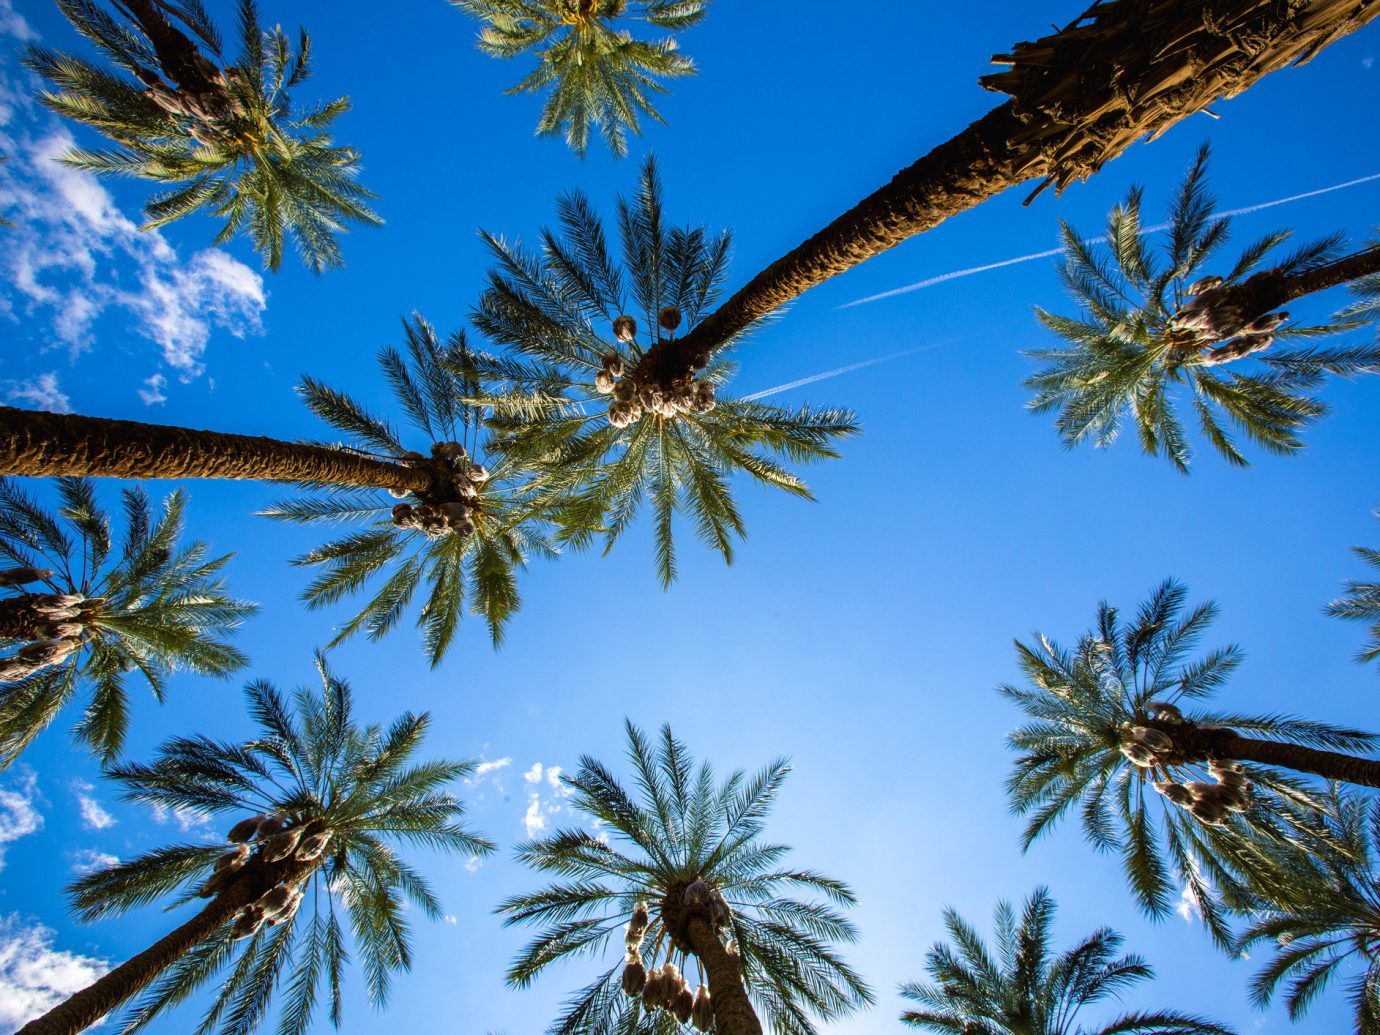 Offbeat tree palm sky plant outdoor palm family flora botany borassus flabellifer land plant woody plant arecales branch leaf flower tropics flowering plant conifer lined Christmas surrounded